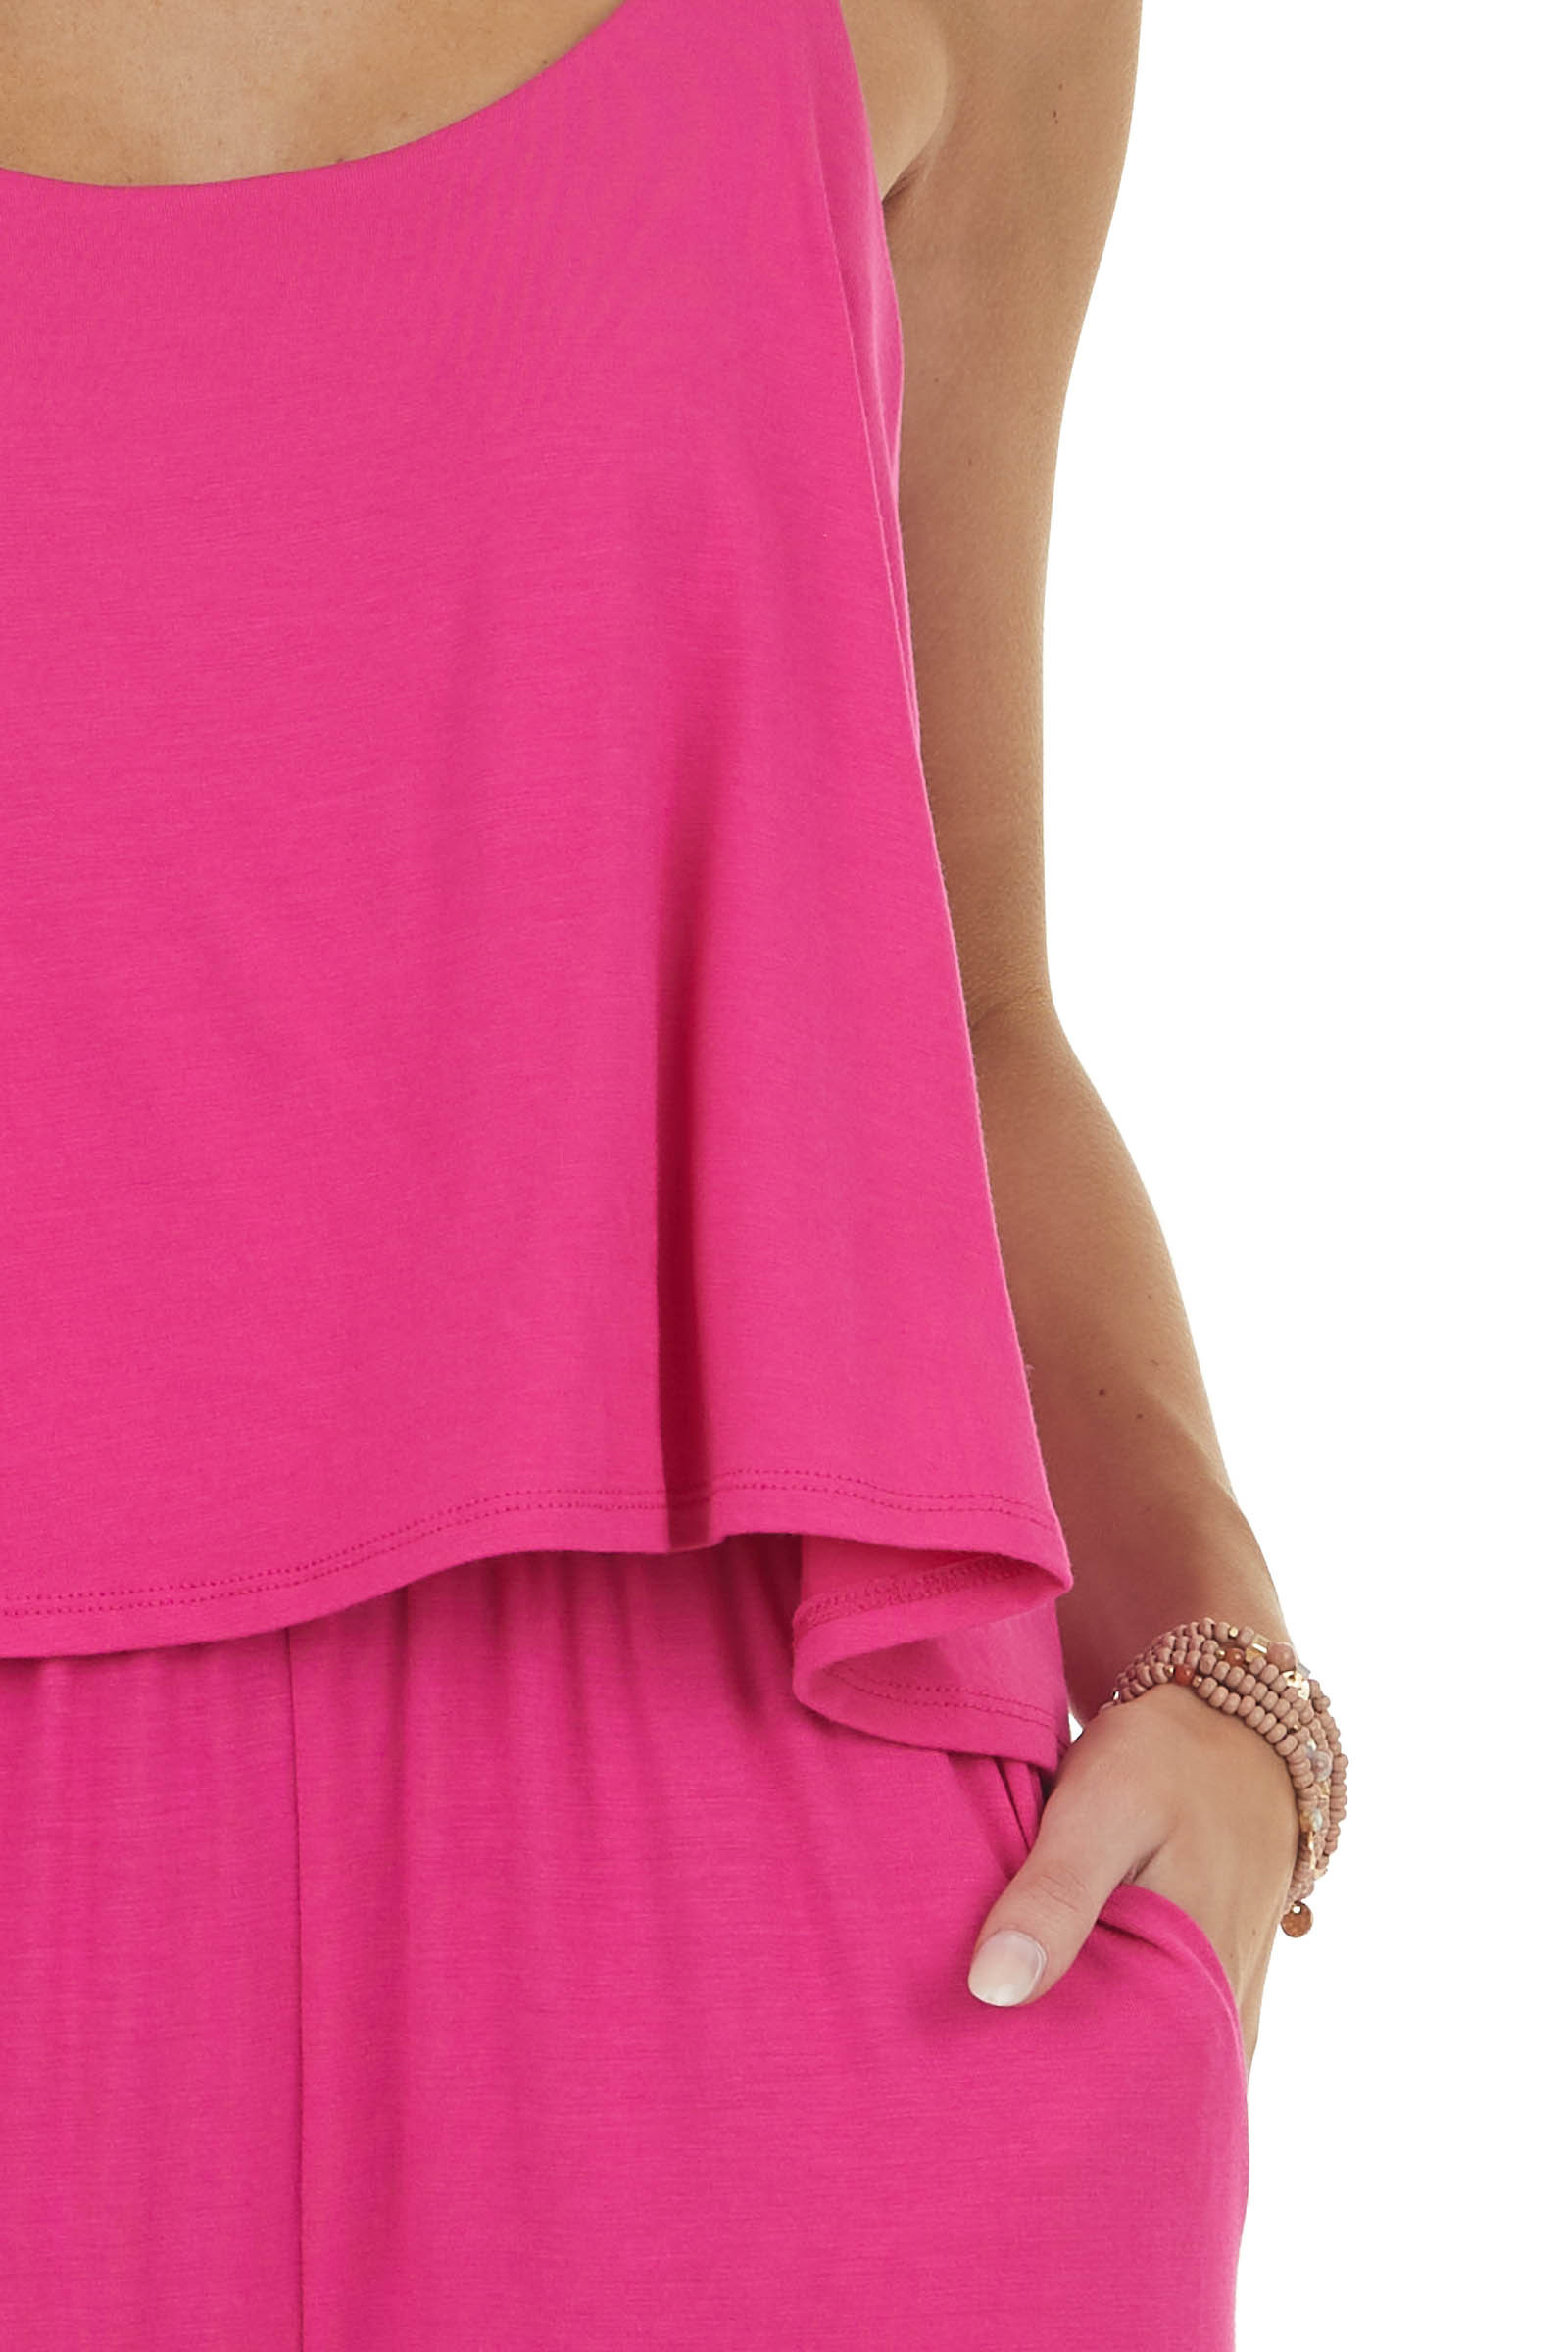 Hot Pink Sleeveless Overlaying Knit Jumpsuit with Pockets